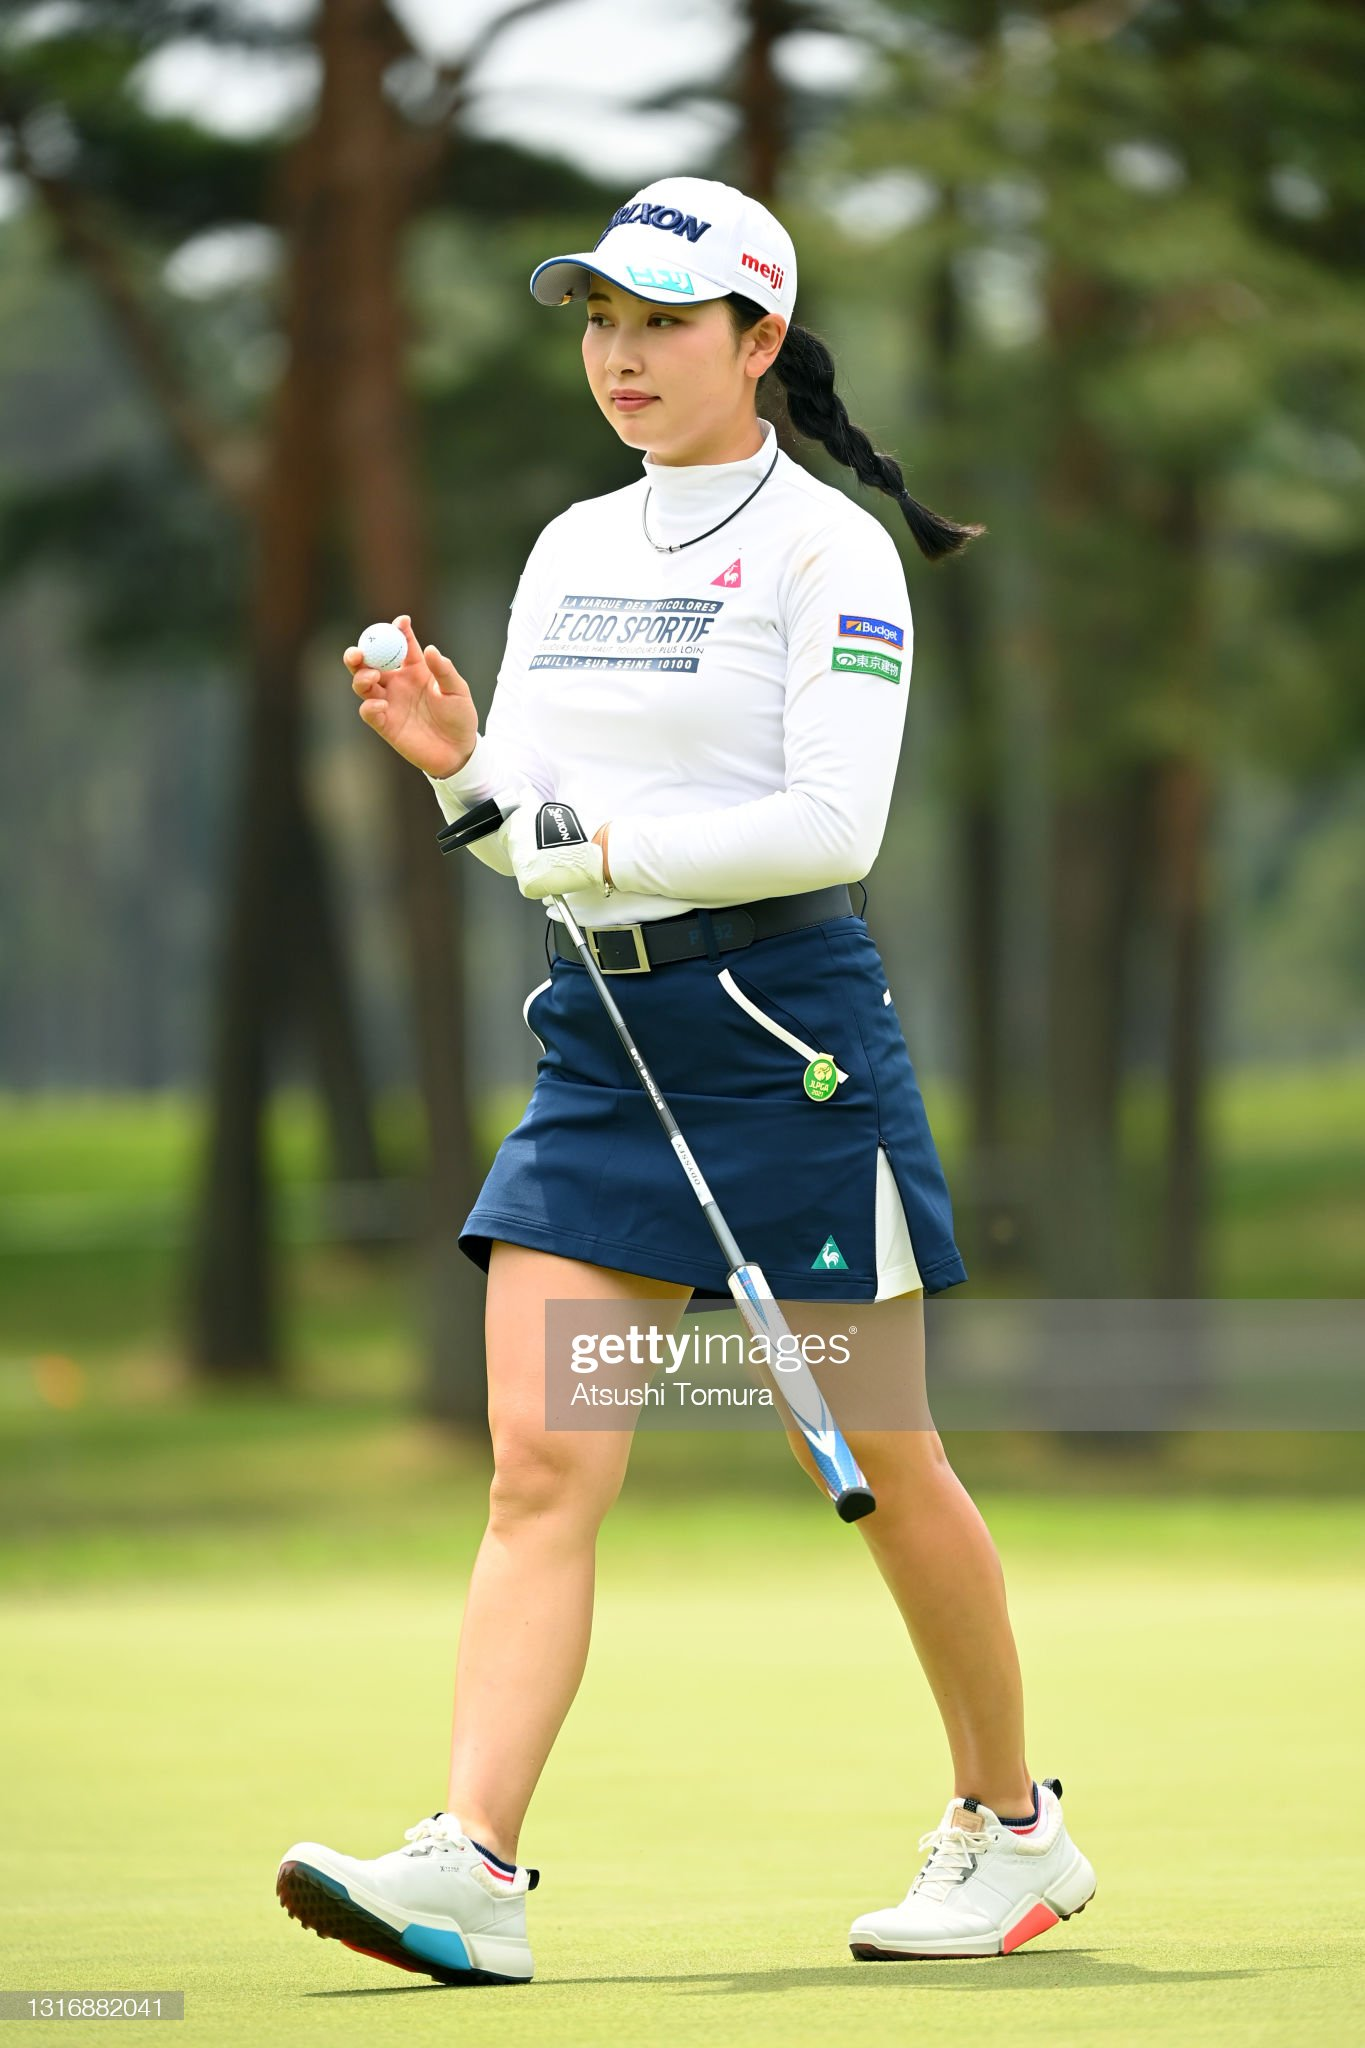 https://media.gettyimages.com/photos/sakura-koiwai-of-japan-reacts-on-the-3rd-green-during-the-third-round-picture-id1316882041?s=2048x2048